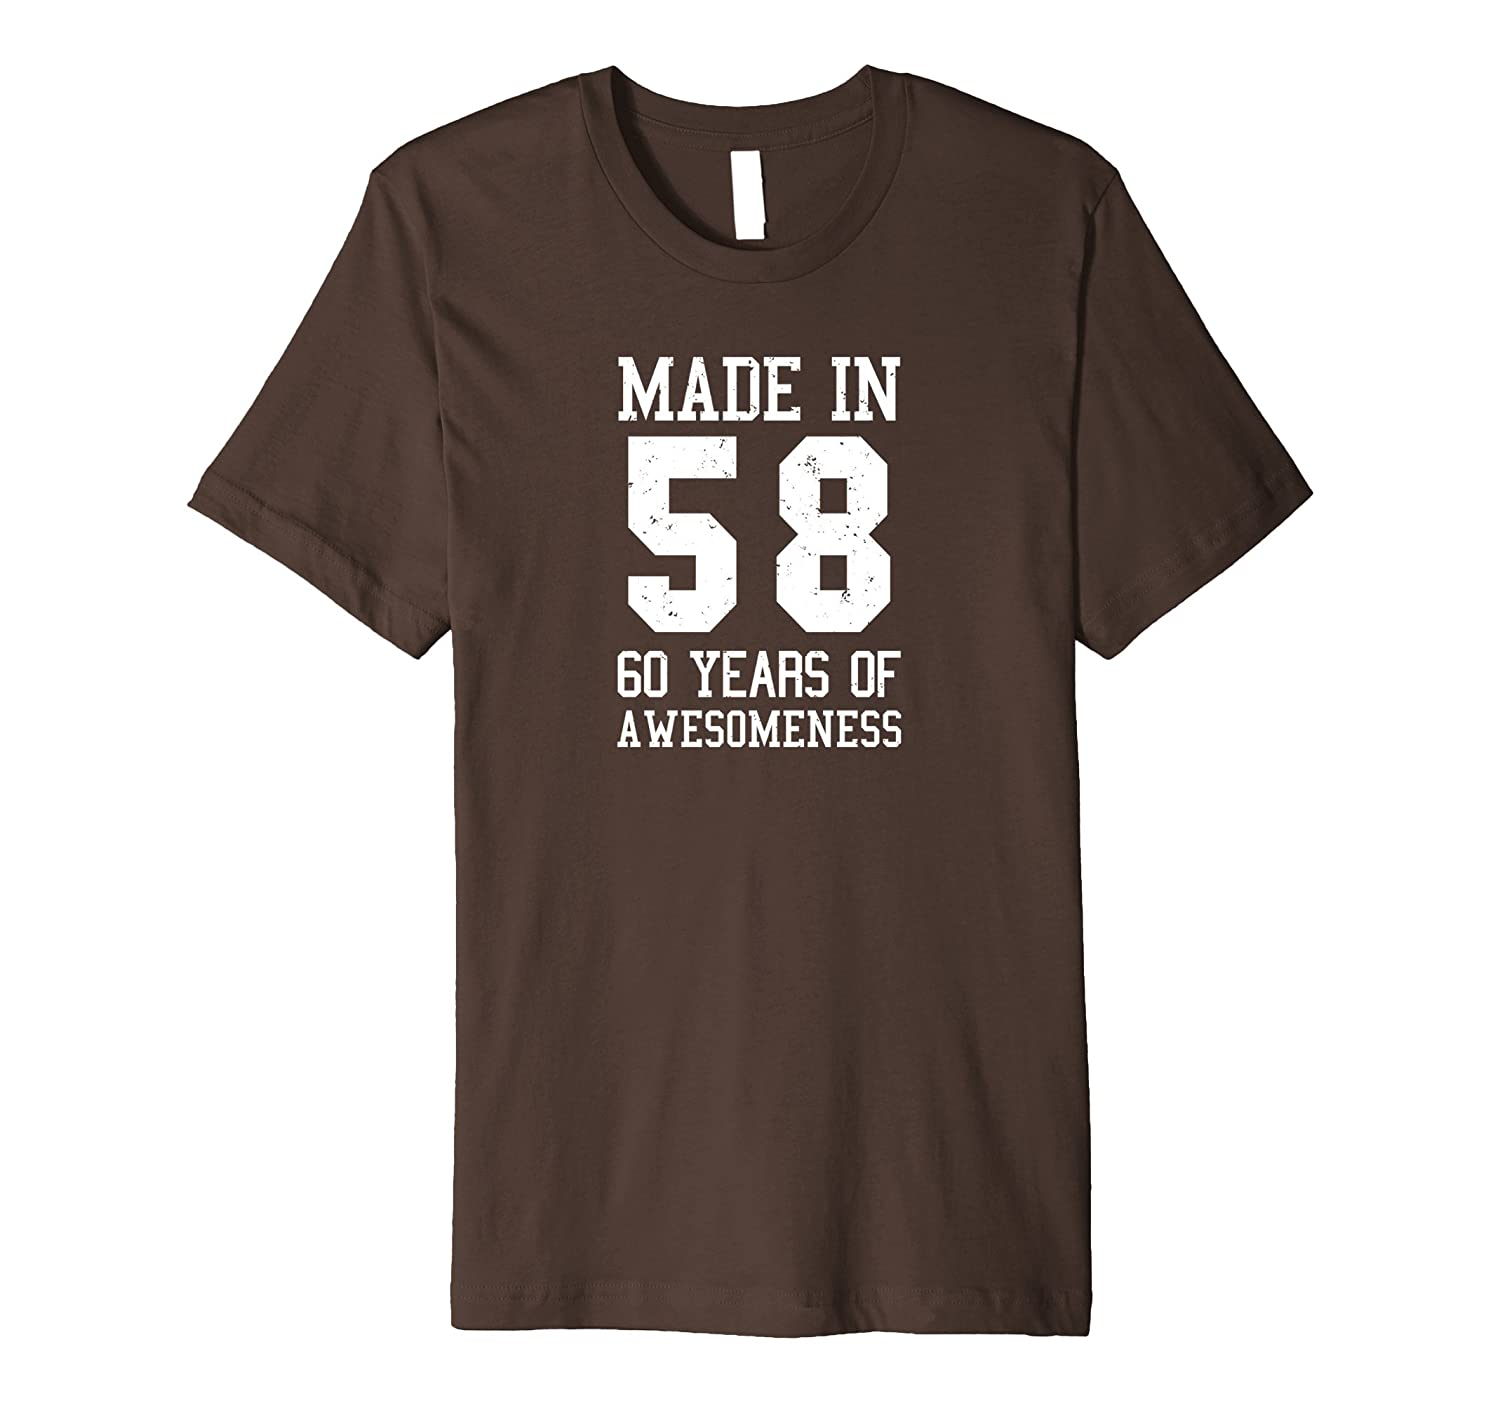 60th Birthday T Shirt Made In 1958 60 Years of Being Awesome-ah my shirt one gift